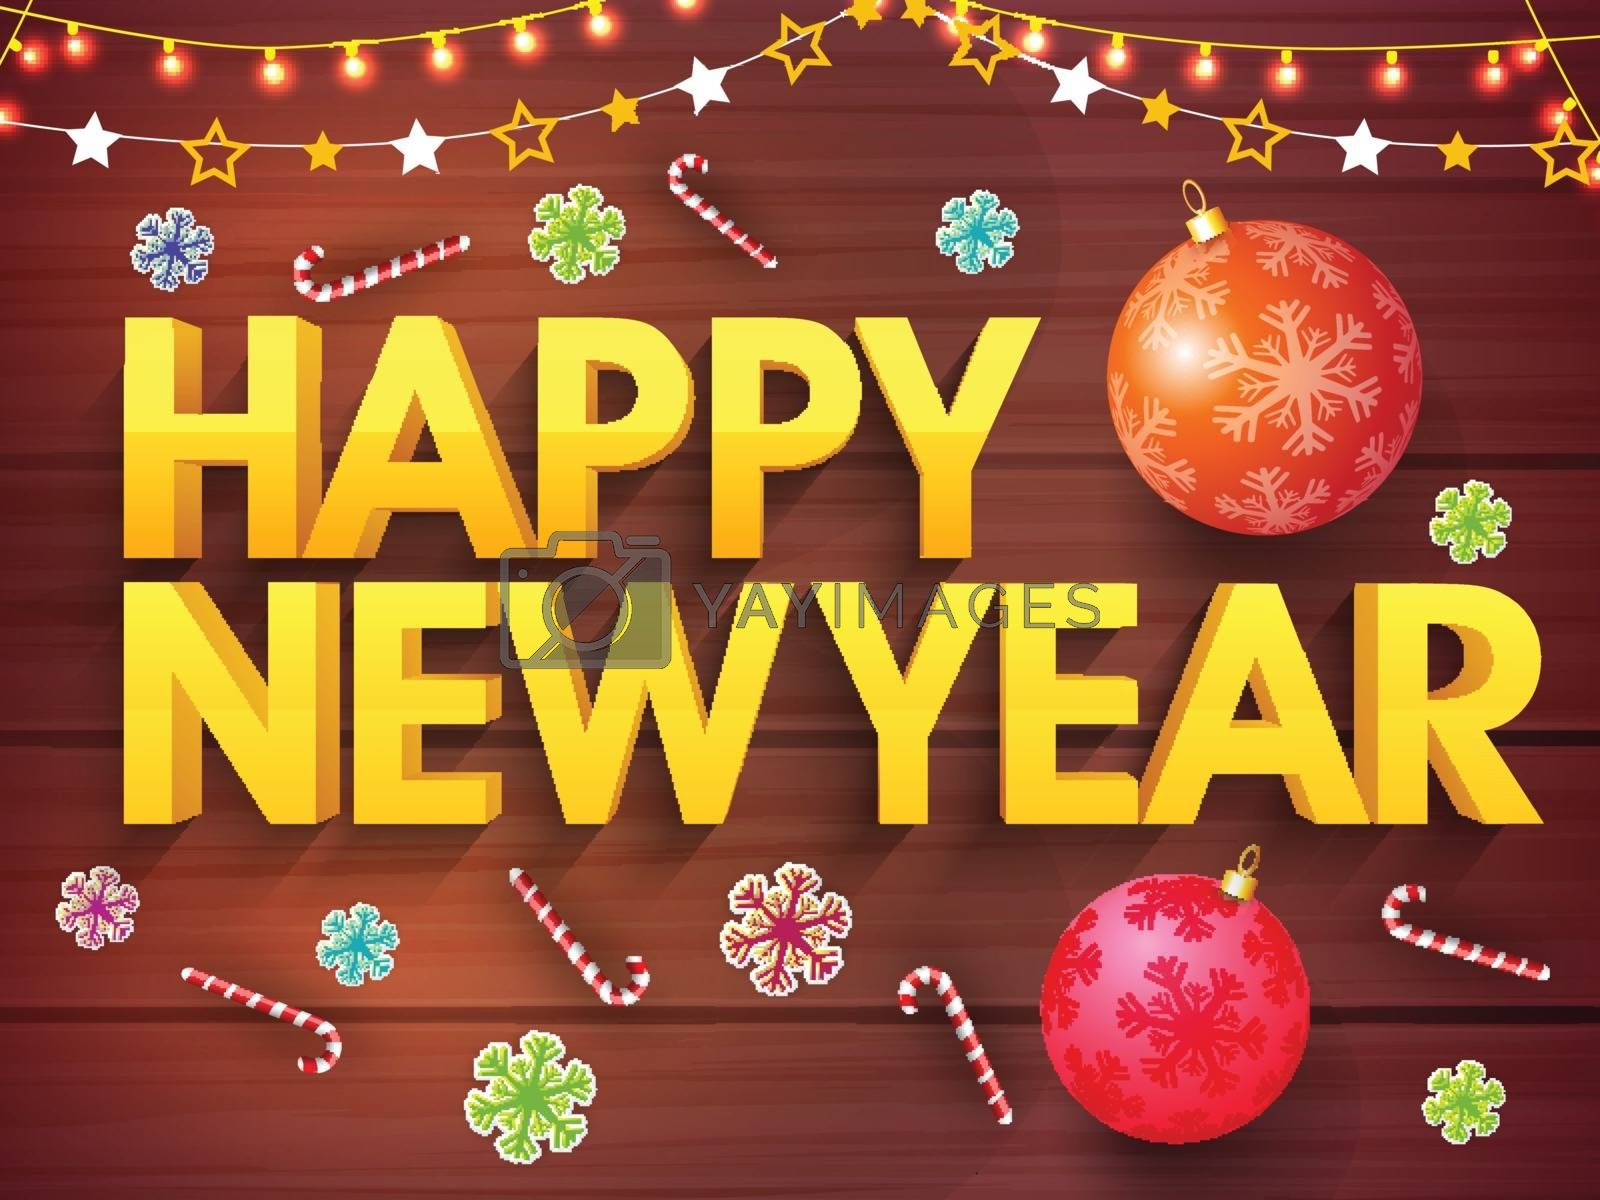 3D Golden Text Happy New Year on xmas ornaments decorated wooden background, Elegant Poster, Banner or Flyer design.